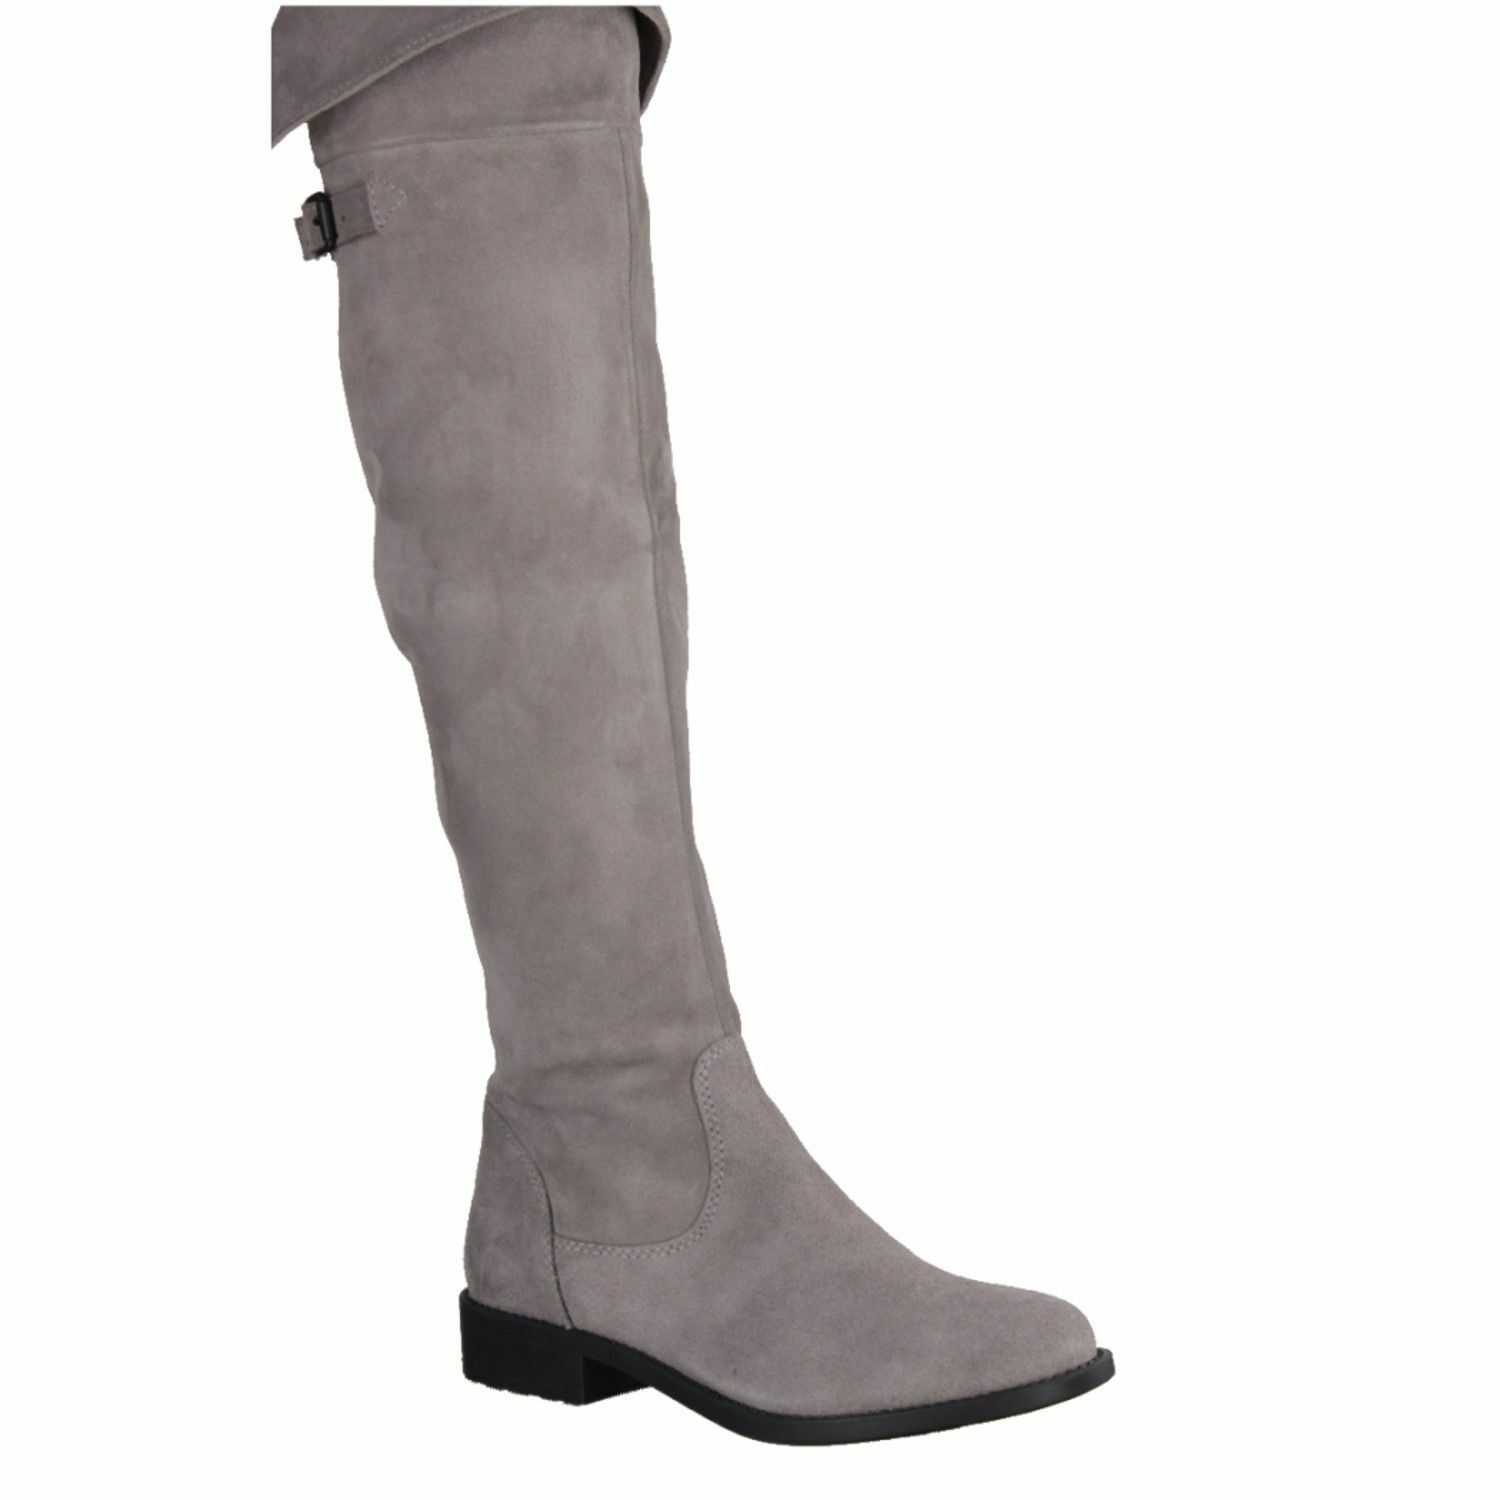 Tamaris 25811 grau Leather Suede Over The Knee Riding Side Zip Up Stiefel  SALE